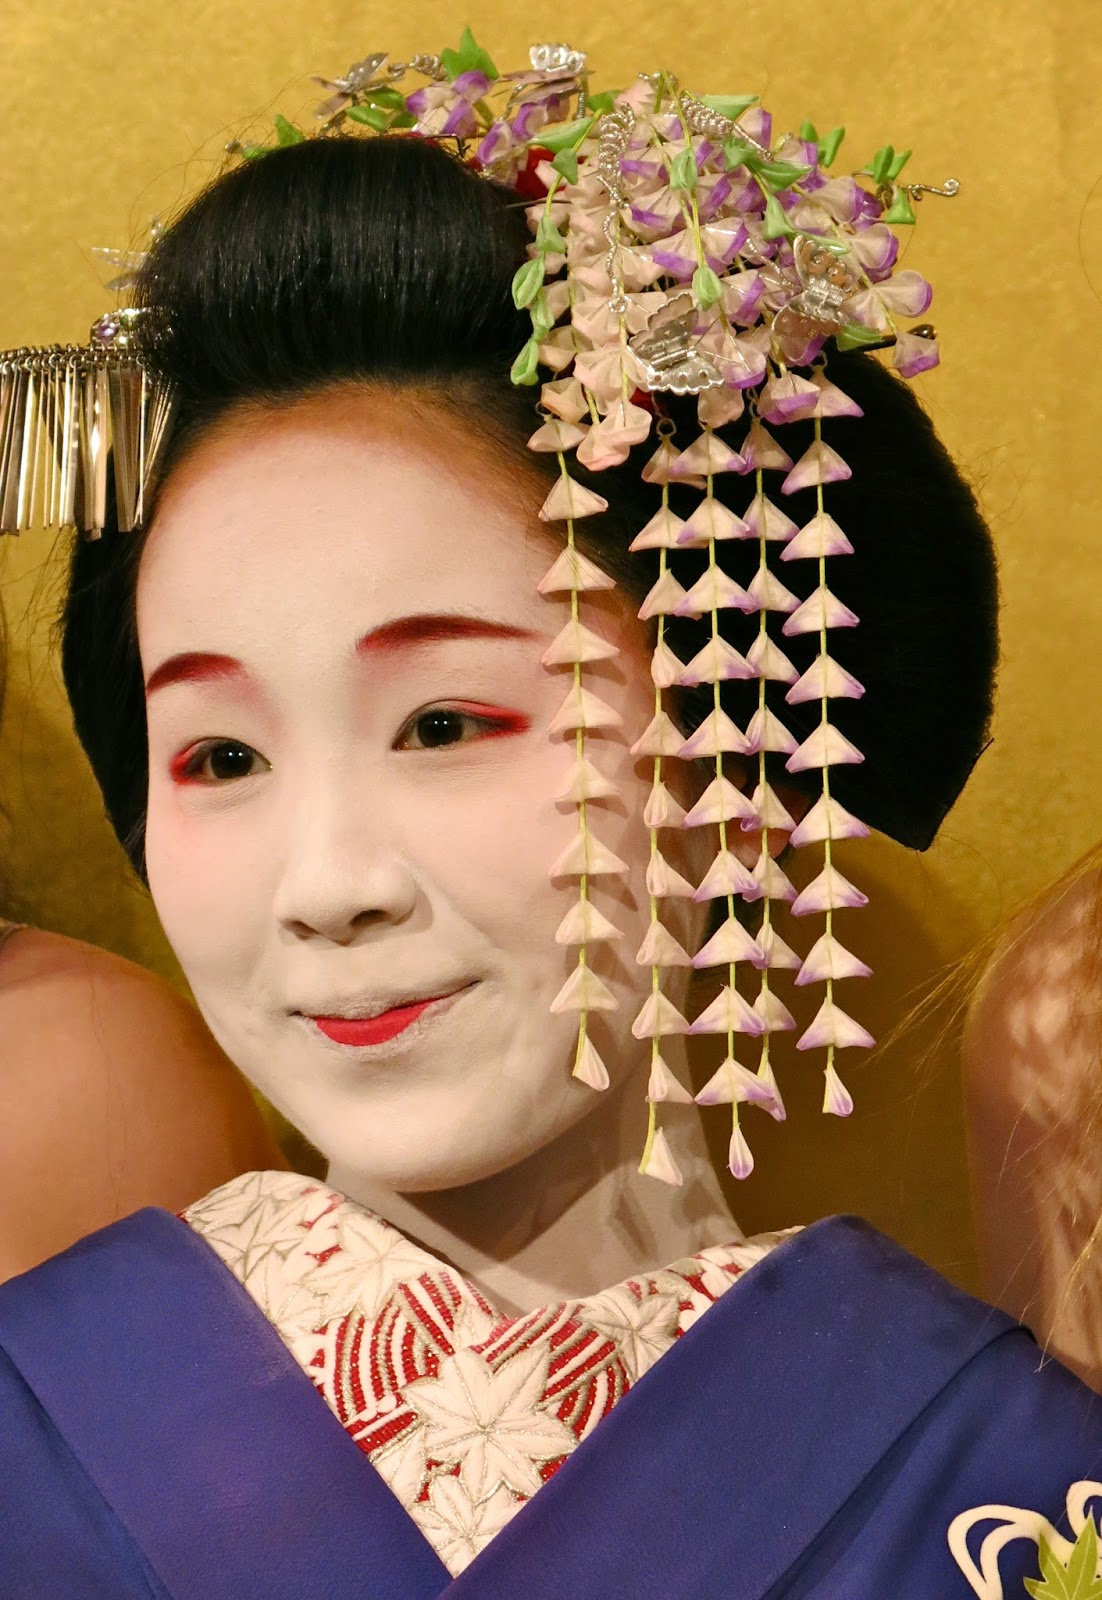 Once They Become Geisha They Can Wear A Wig Which Is What This Lady